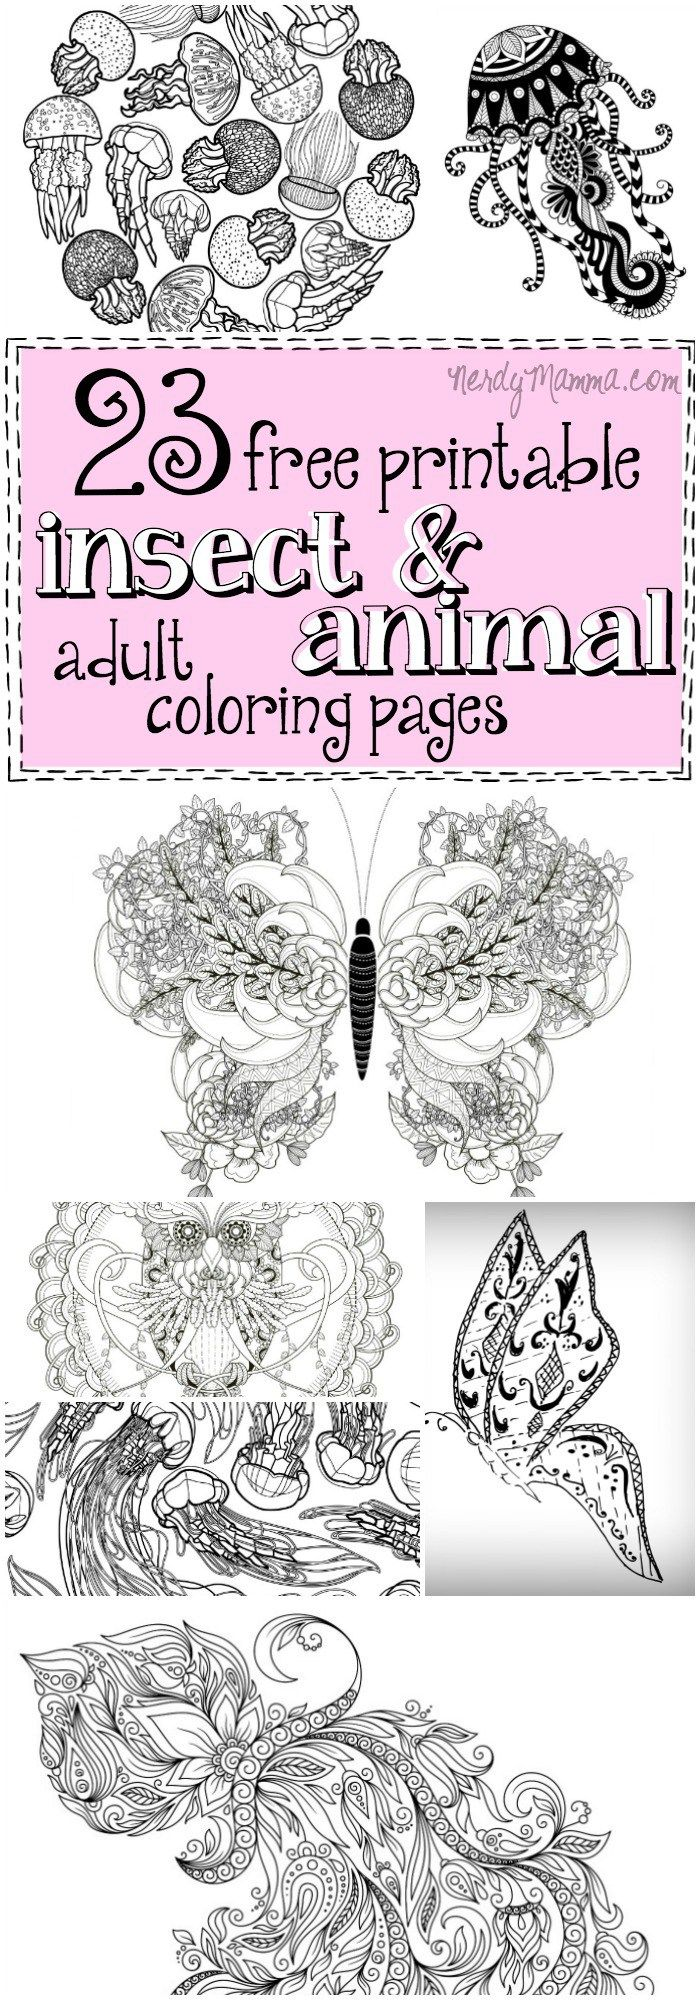 Coloring pages for doctors day - 23 Free Printable Insect Animal Adult Coloring Pages